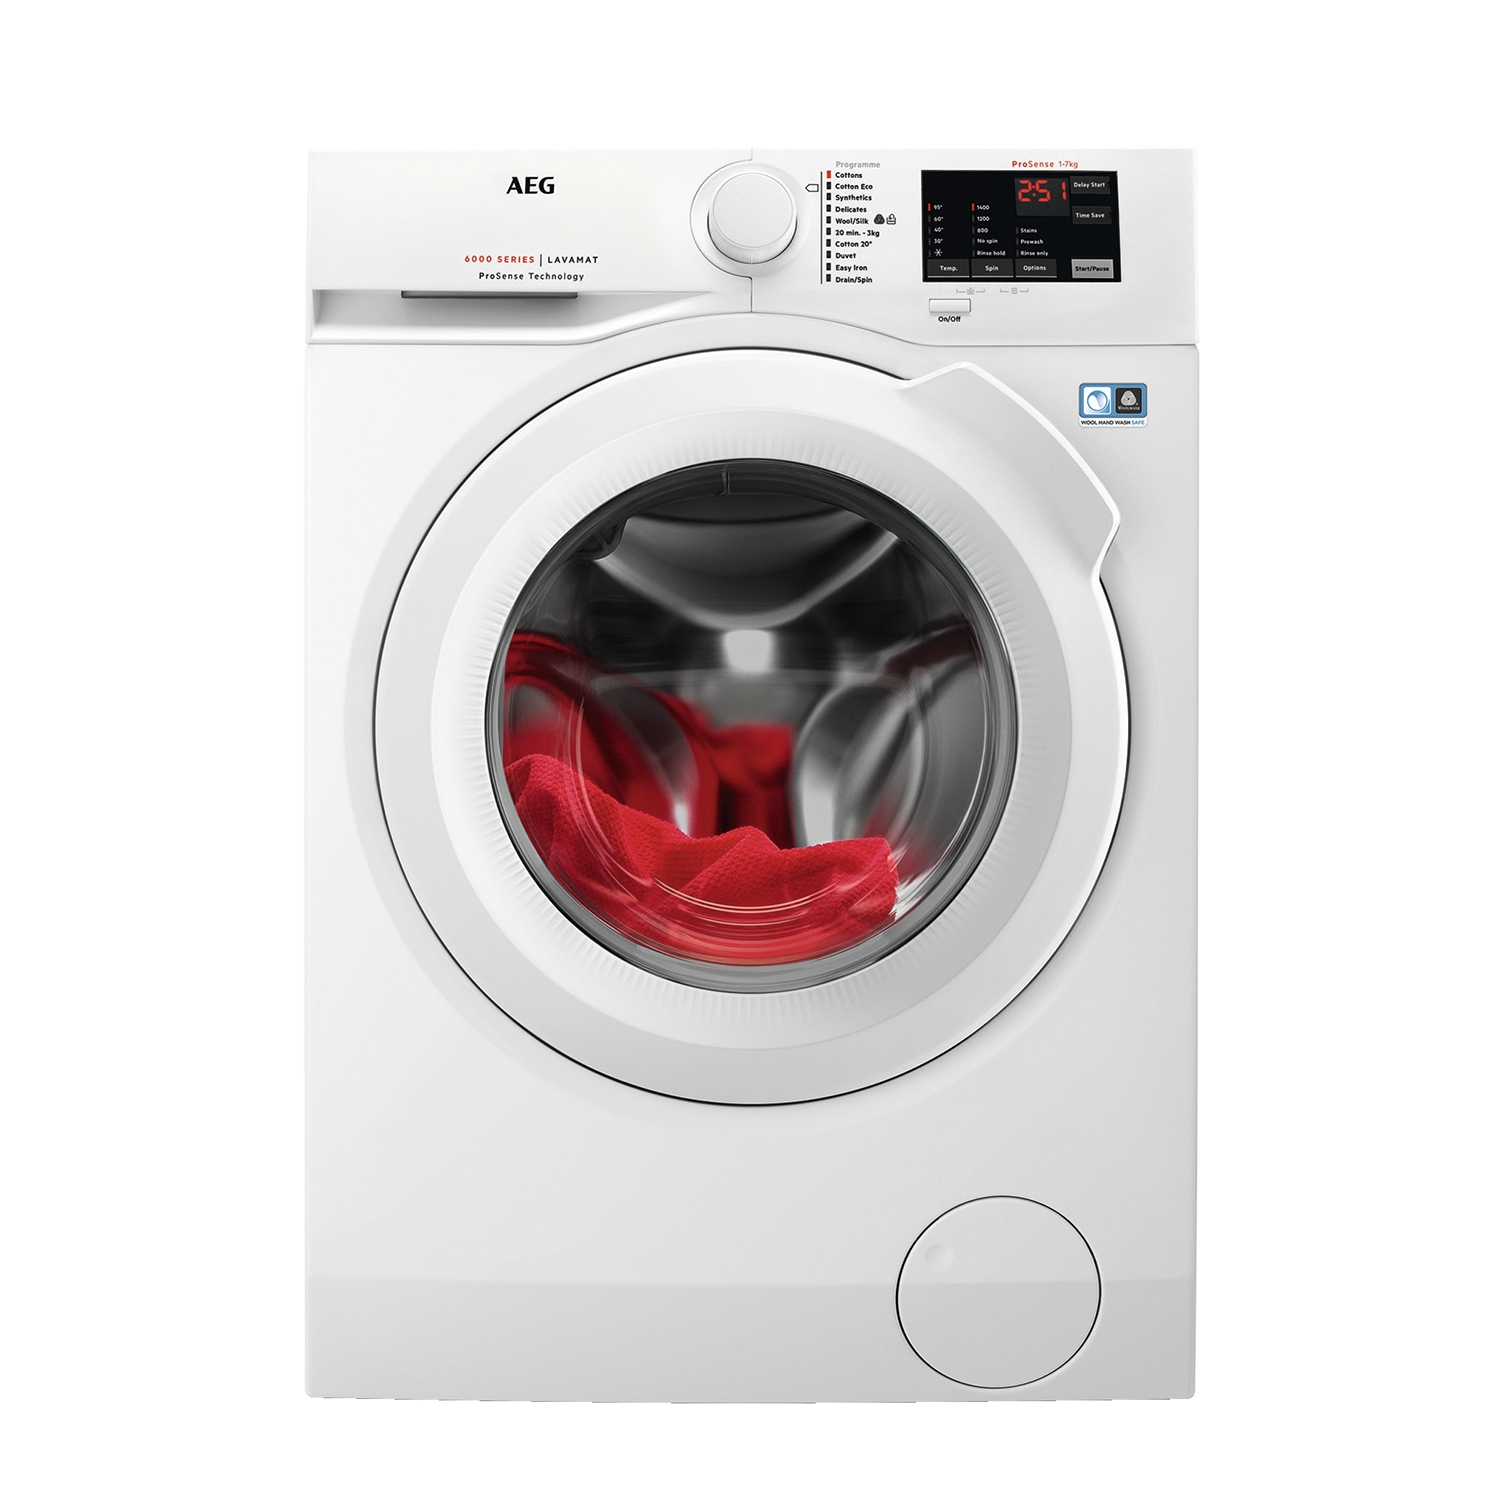 AEG 7kg 1400 Spin Washing Machine - White - A+++ Energy Rated - 0